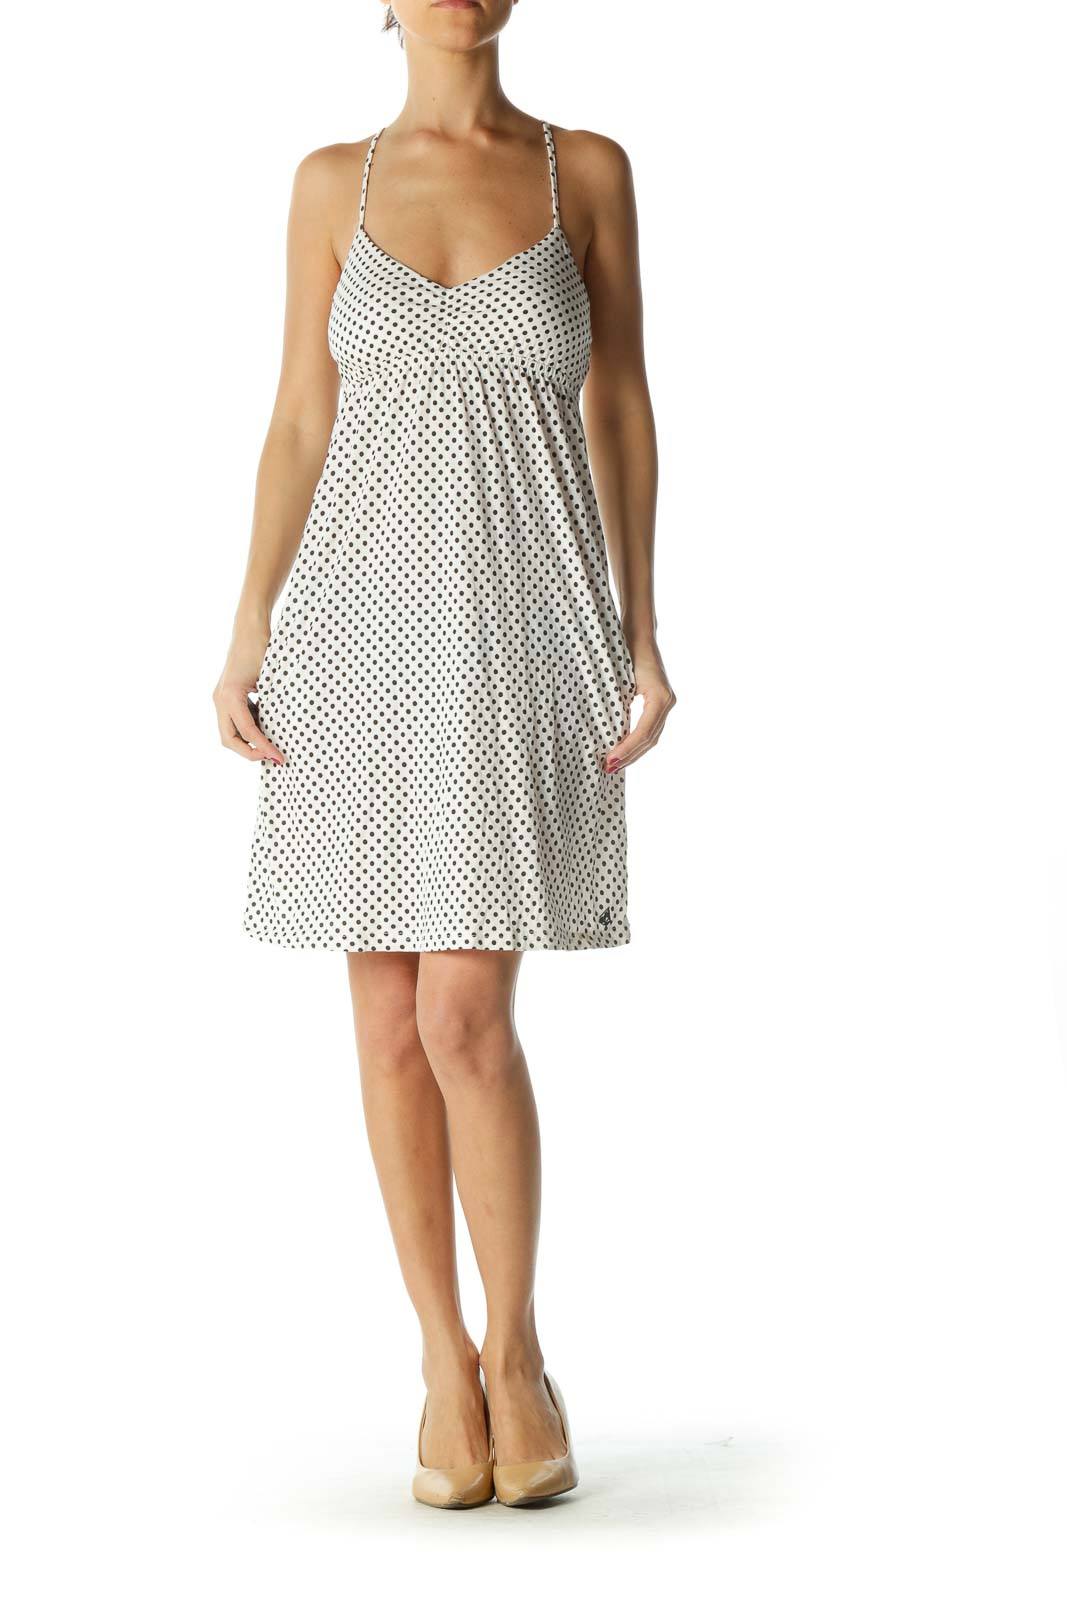 Black and White Polka-Dot Dress